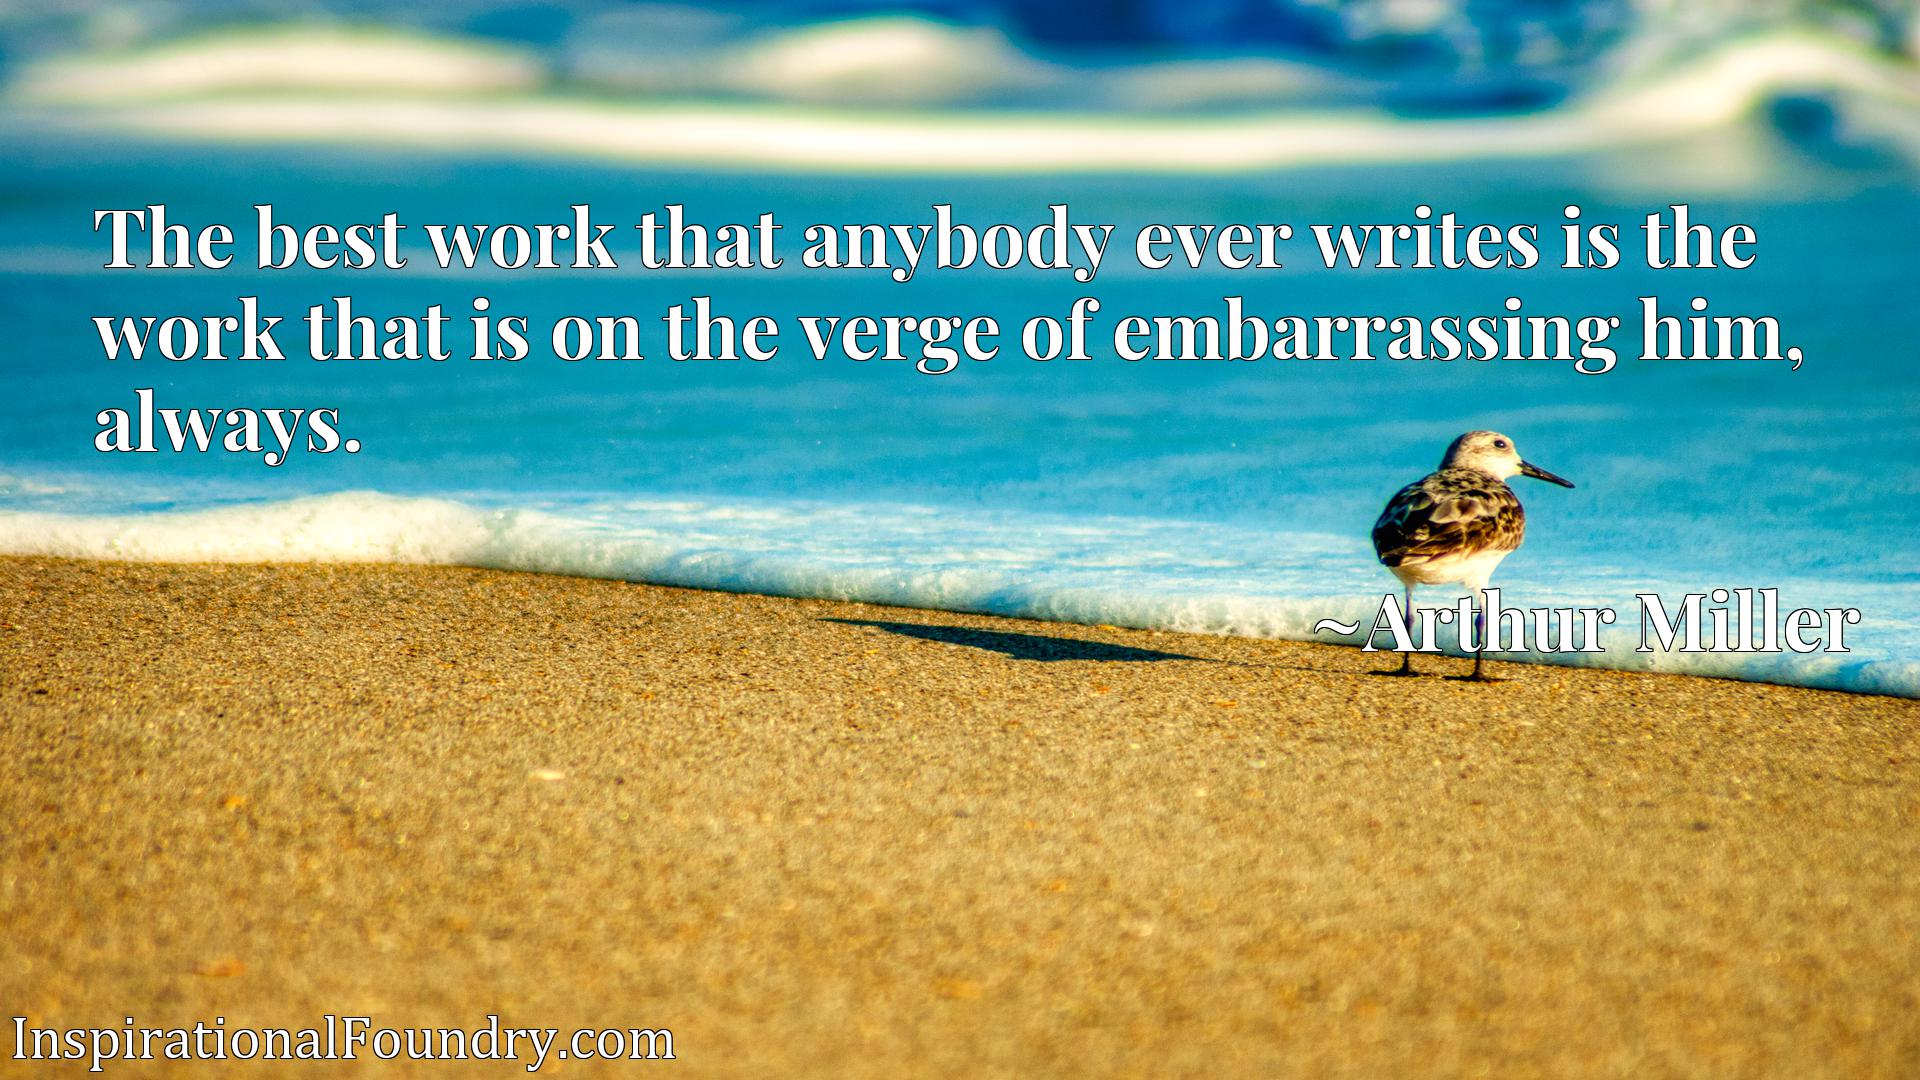 Quote Picture :The best work that anybody ever writes is the work that is on the verge of embarrassing him, always.